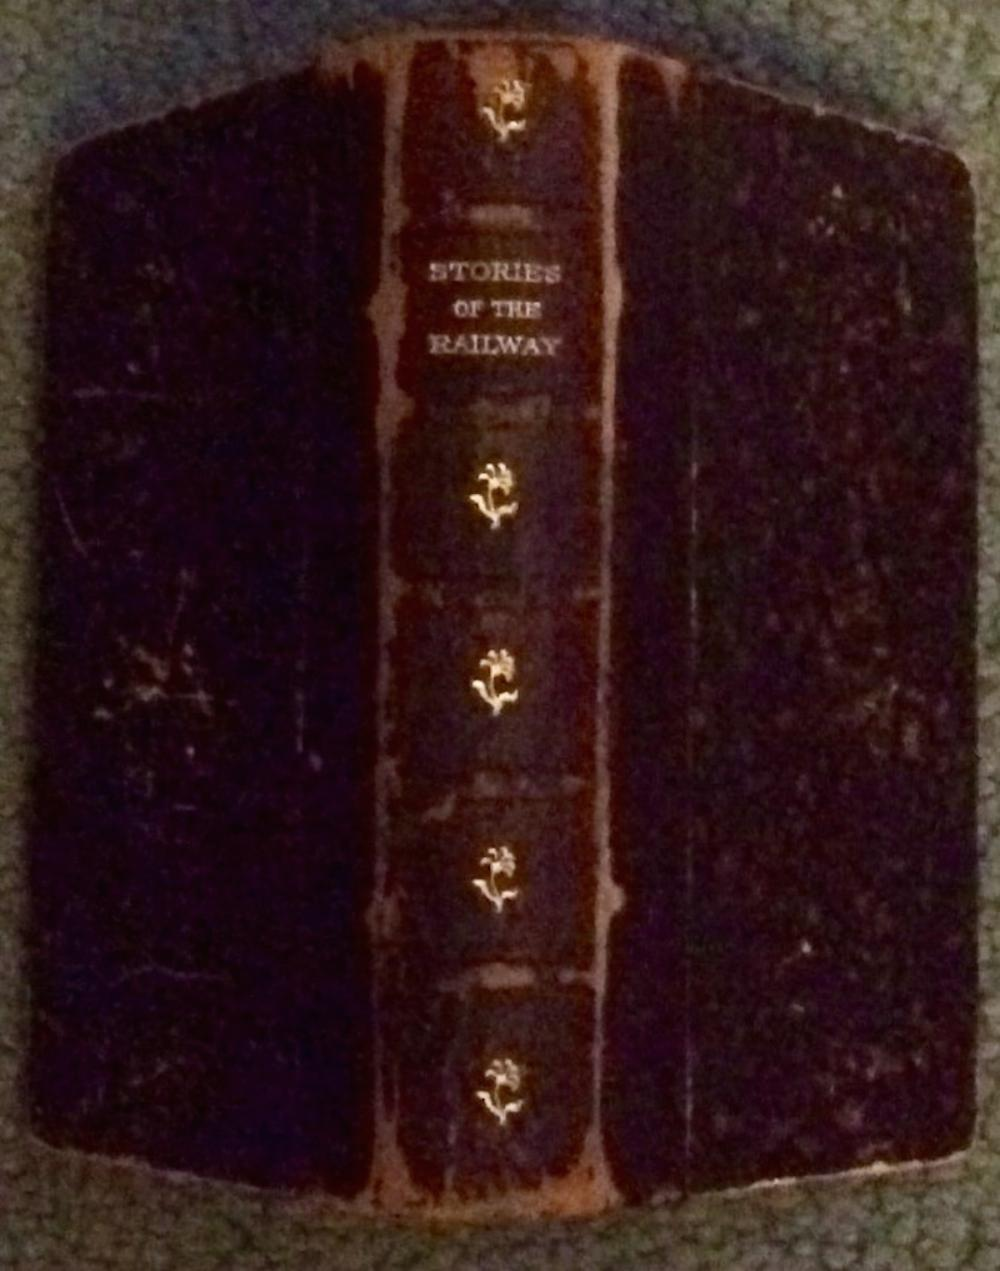 """Stories Of The Railway"" by Various Authors ANTIQUE 1893 Hardcover Decorated 1/2 Leather Binding (4) Scribner's Railway Stories"